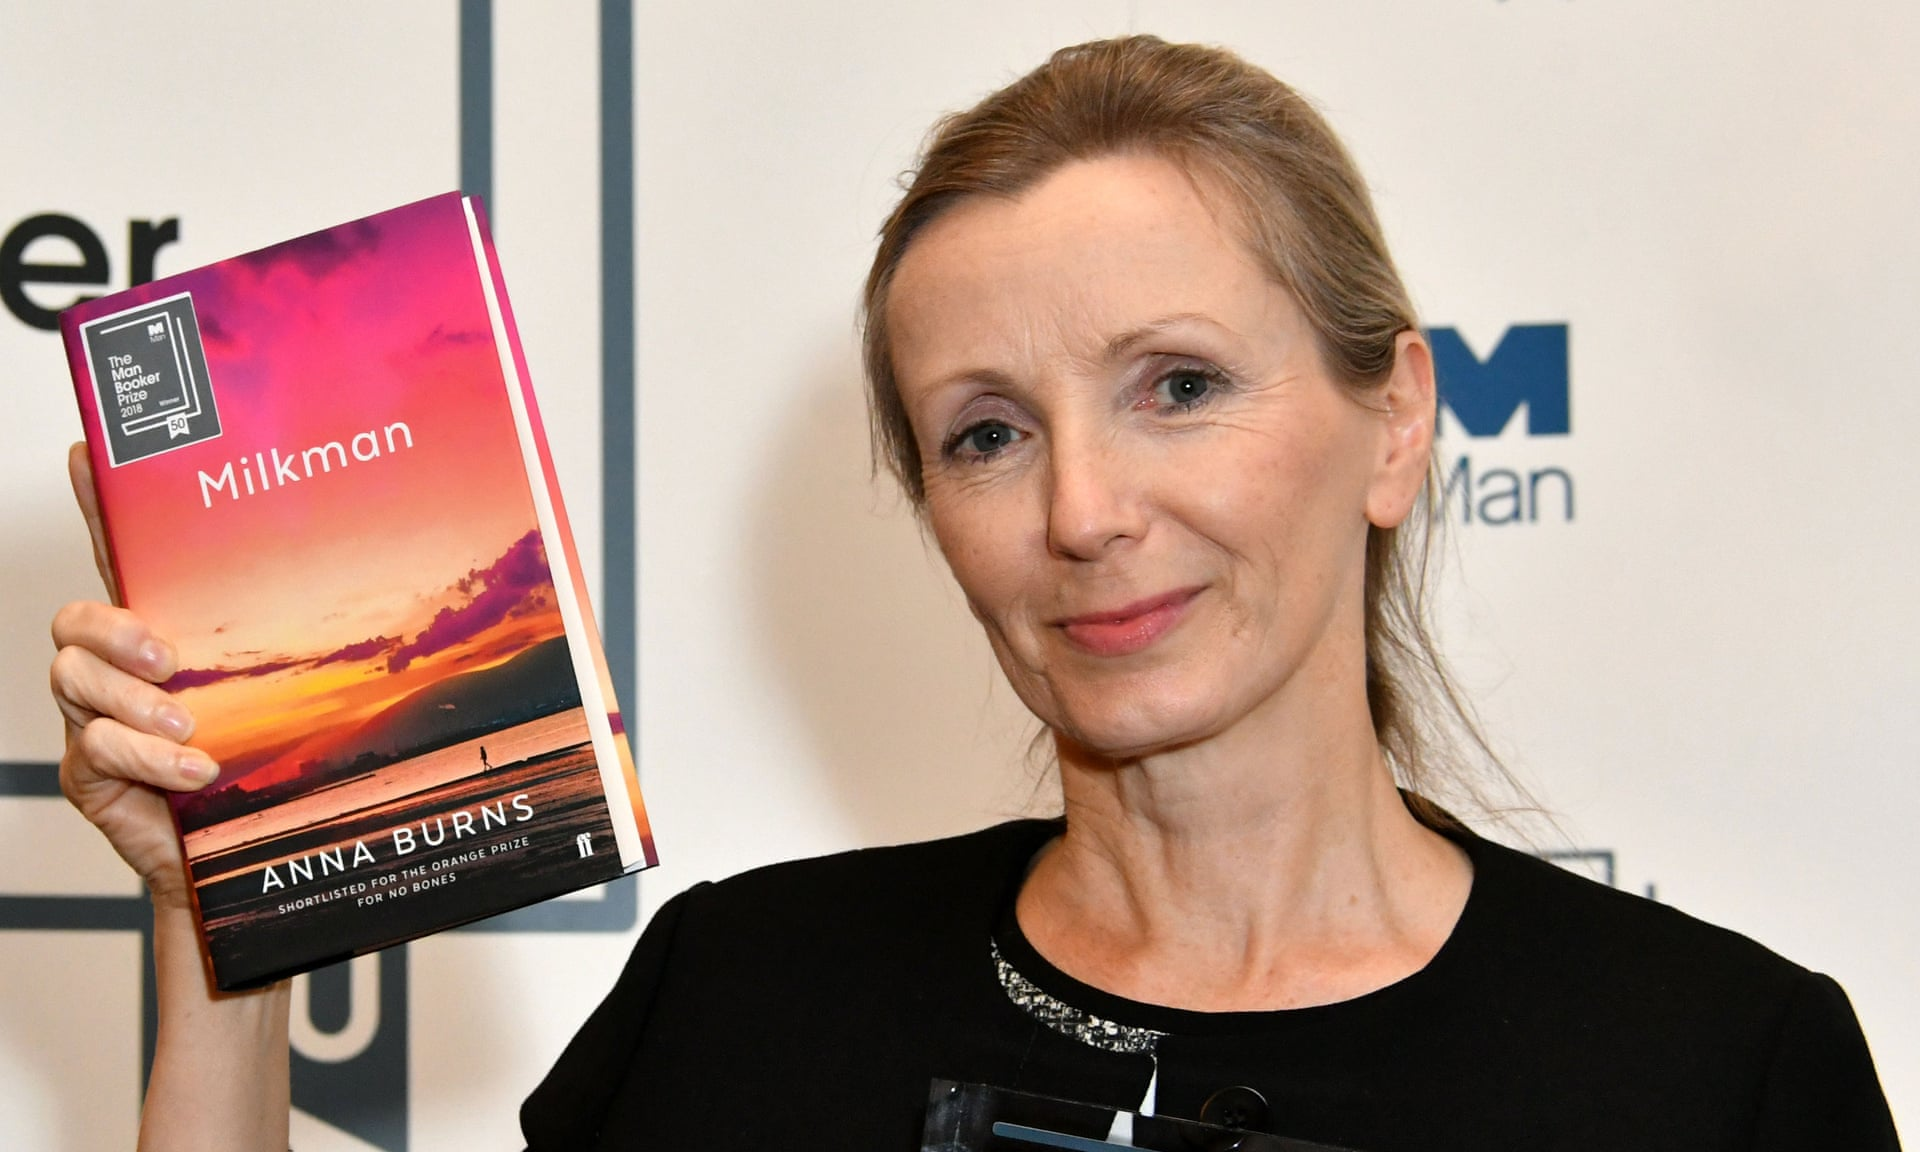 """Anna Burns Wins Man Booker Prize For """"Incredibly Original"""" Milkman by Alison Flood and Claire Armitstead for The Guardian"""